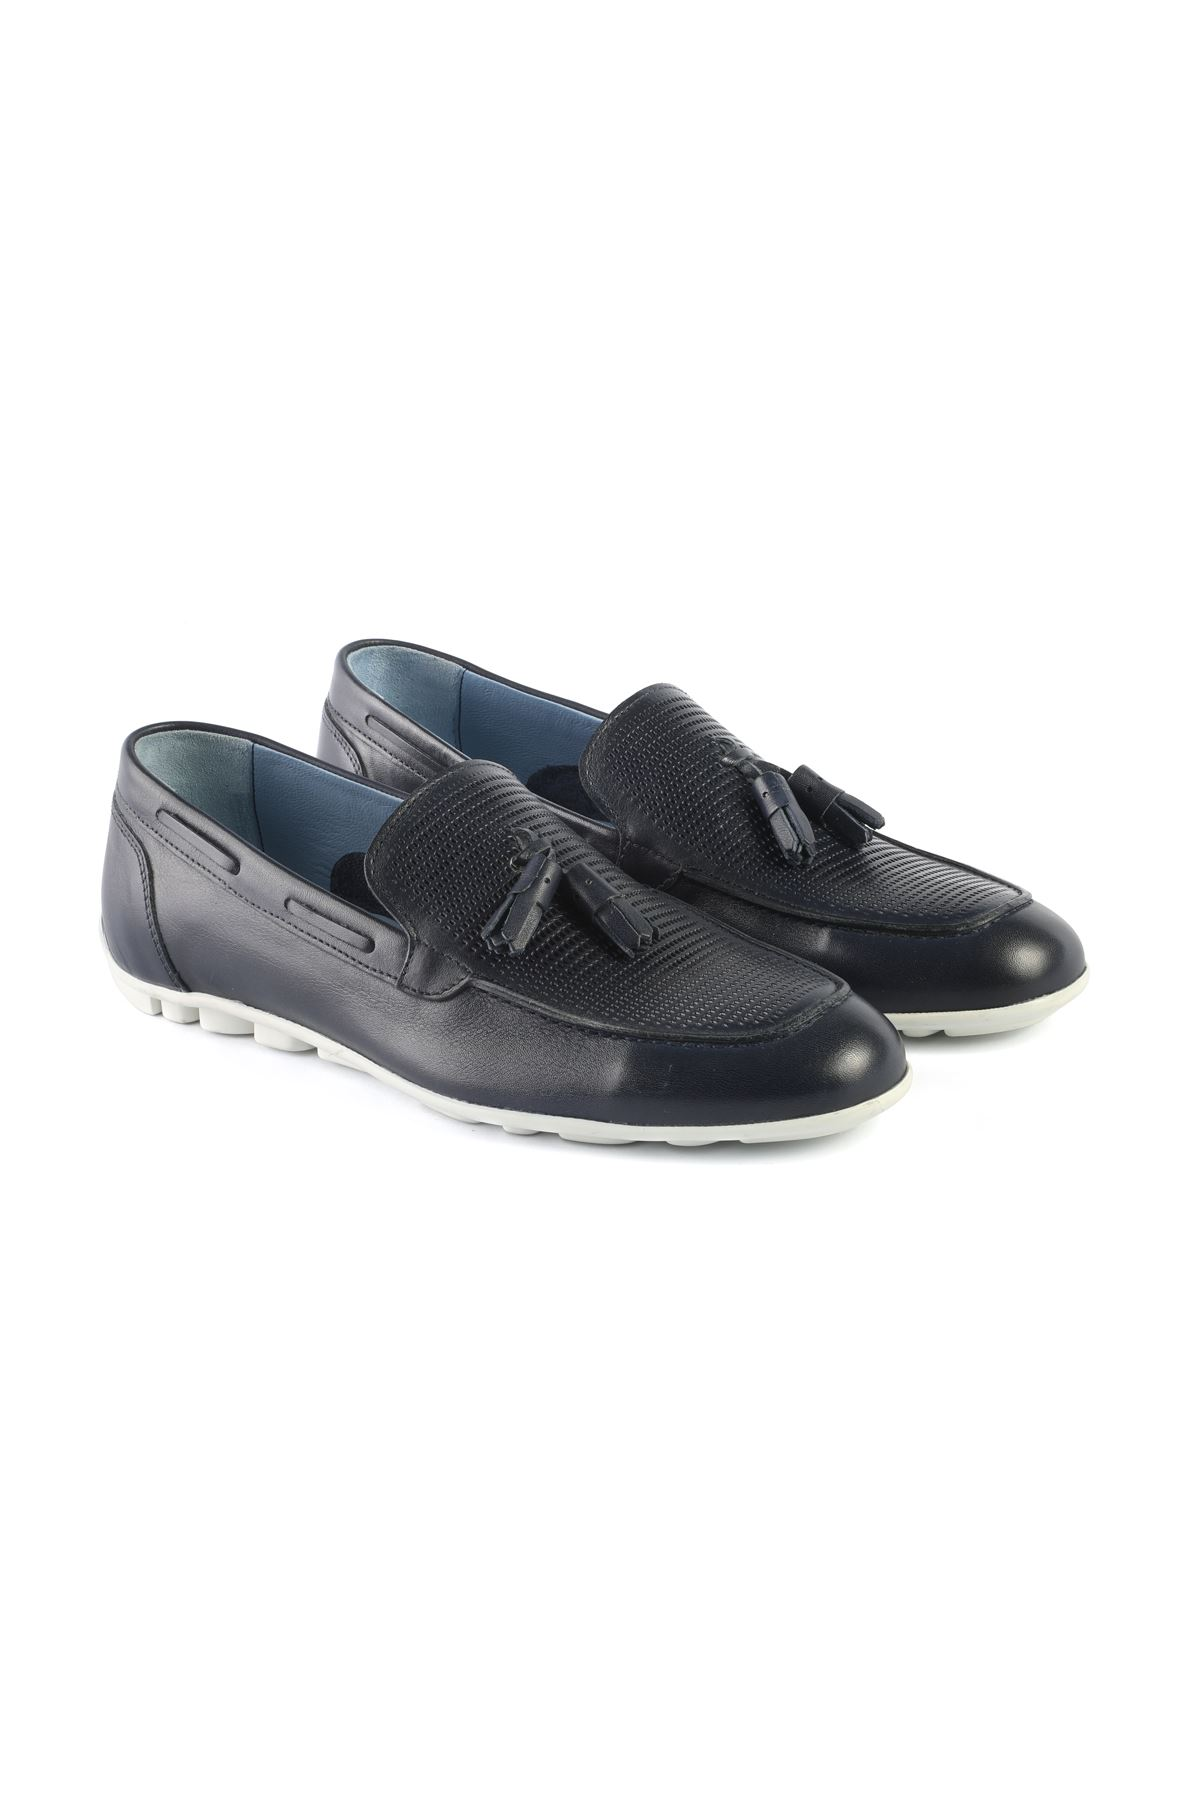 Libero L3408 Navy Blue Loafer Shoes